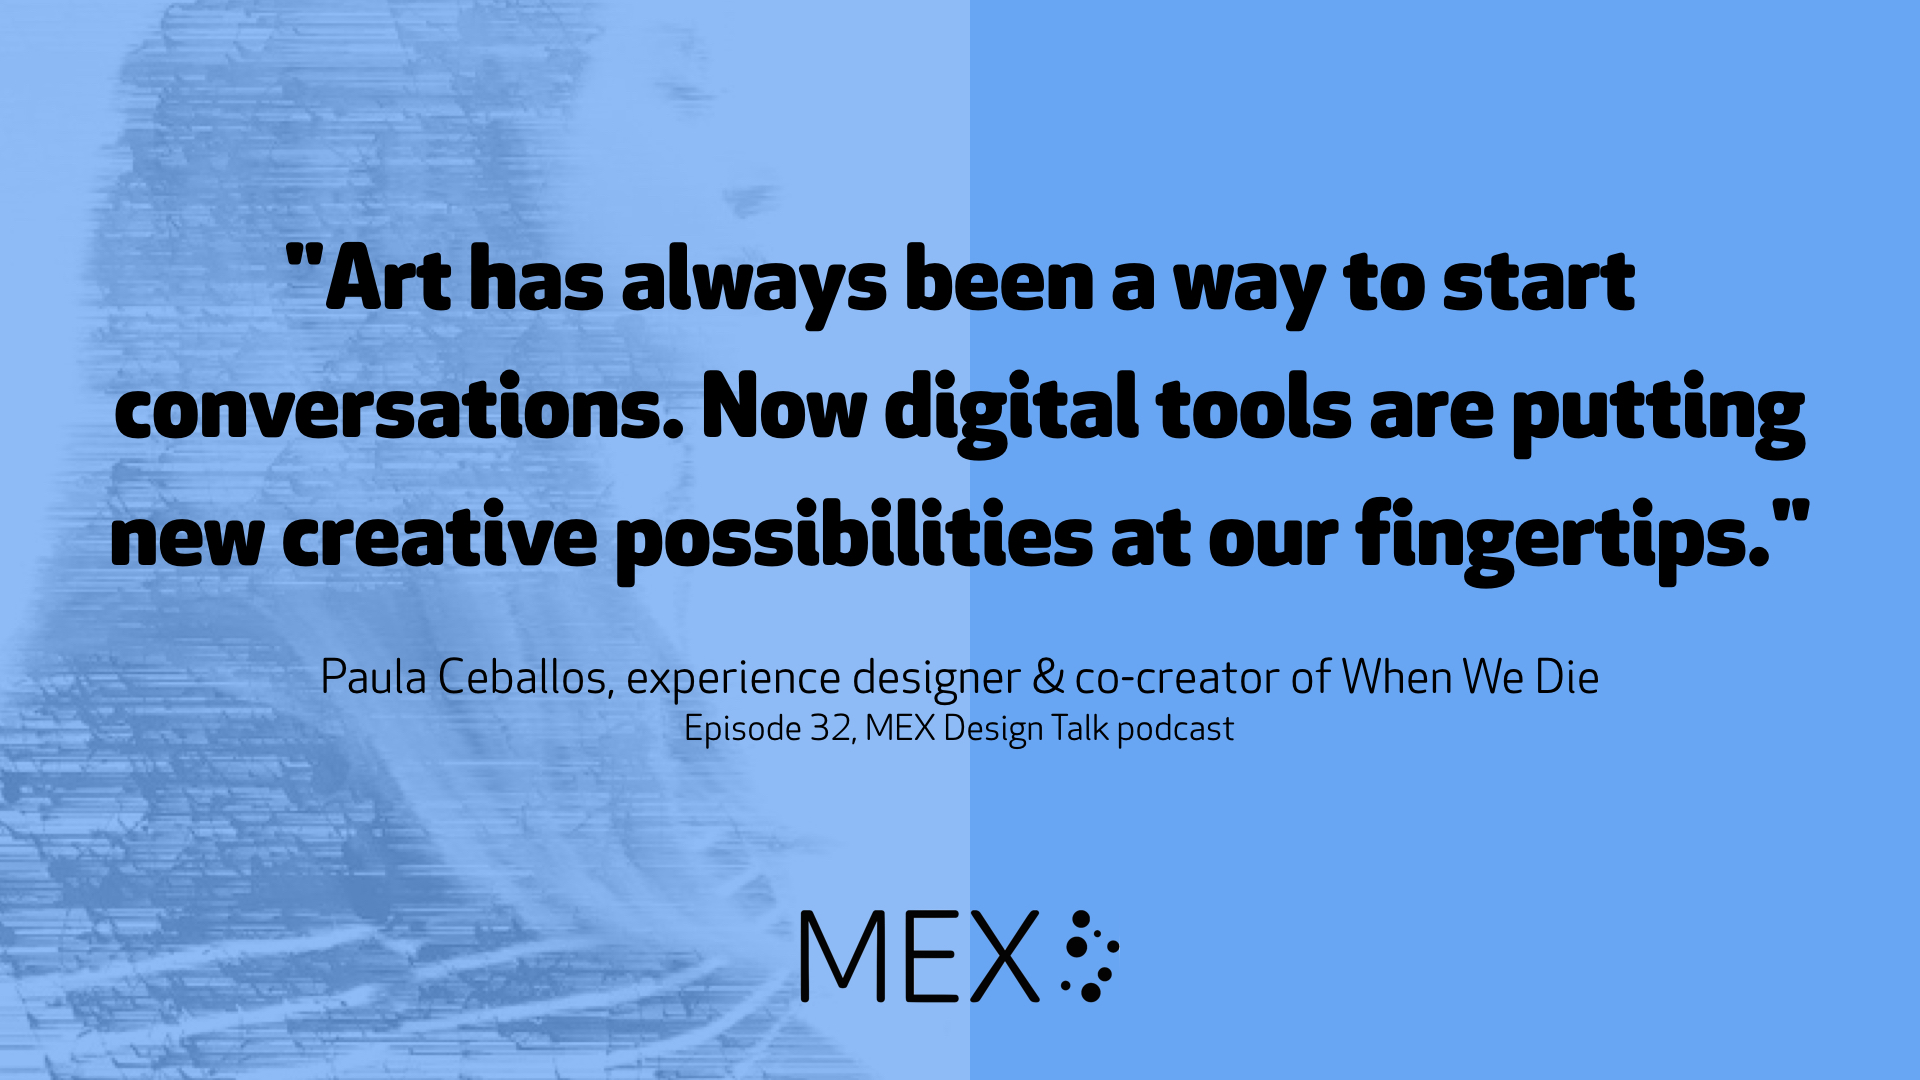 """Art has always been a way to start conversations. Now digital tools are putting new creative possibilities at our fingertips."" Paula Ceballos, experience designer & co-creator of When We Die Episode 32, MEX Design Talk podcast"